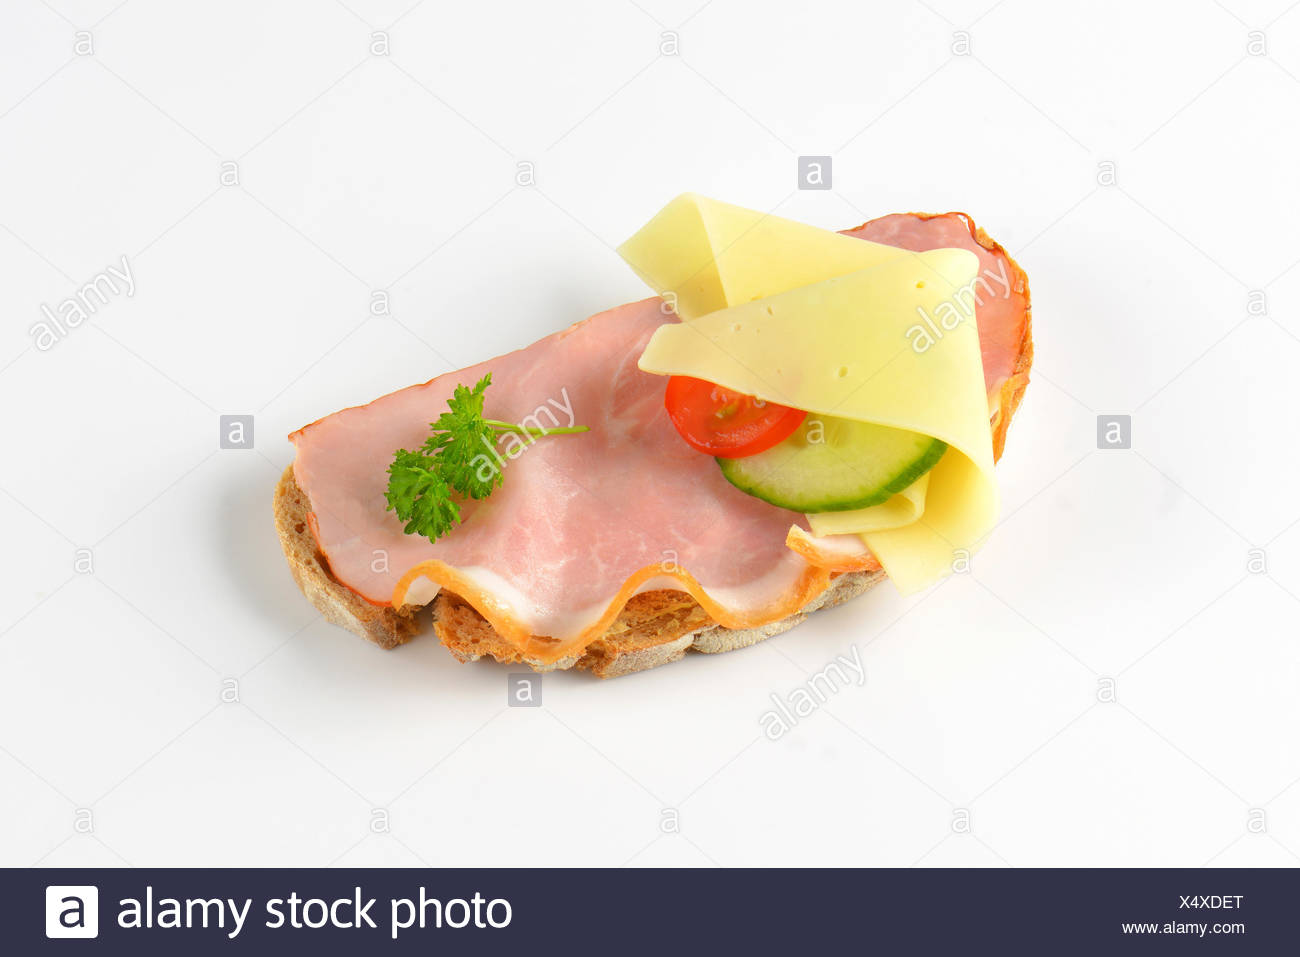 open faced sandwich - Stock Image